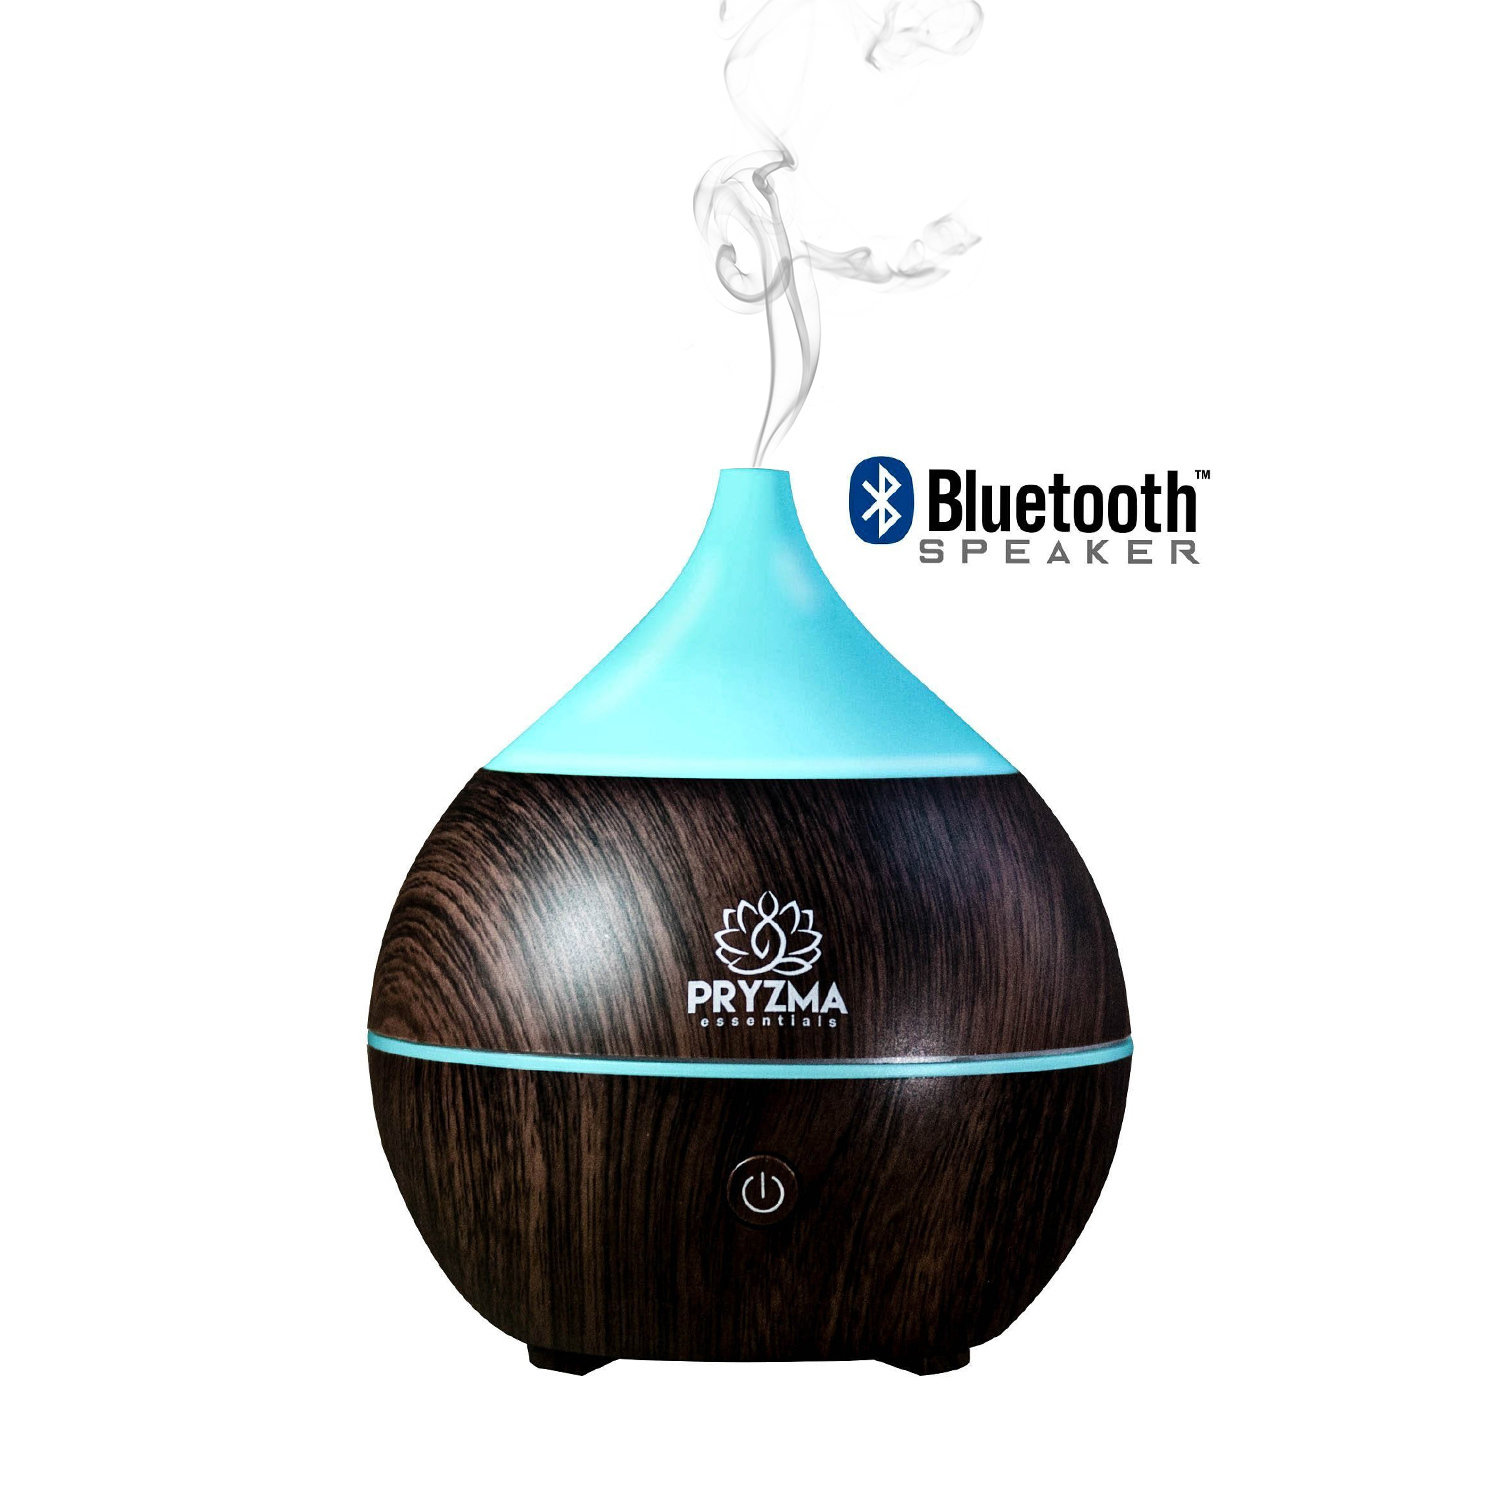 Pryzma Essentials Aromatherapy Diffuser + 2 FREE 10ml Diffusion Blends